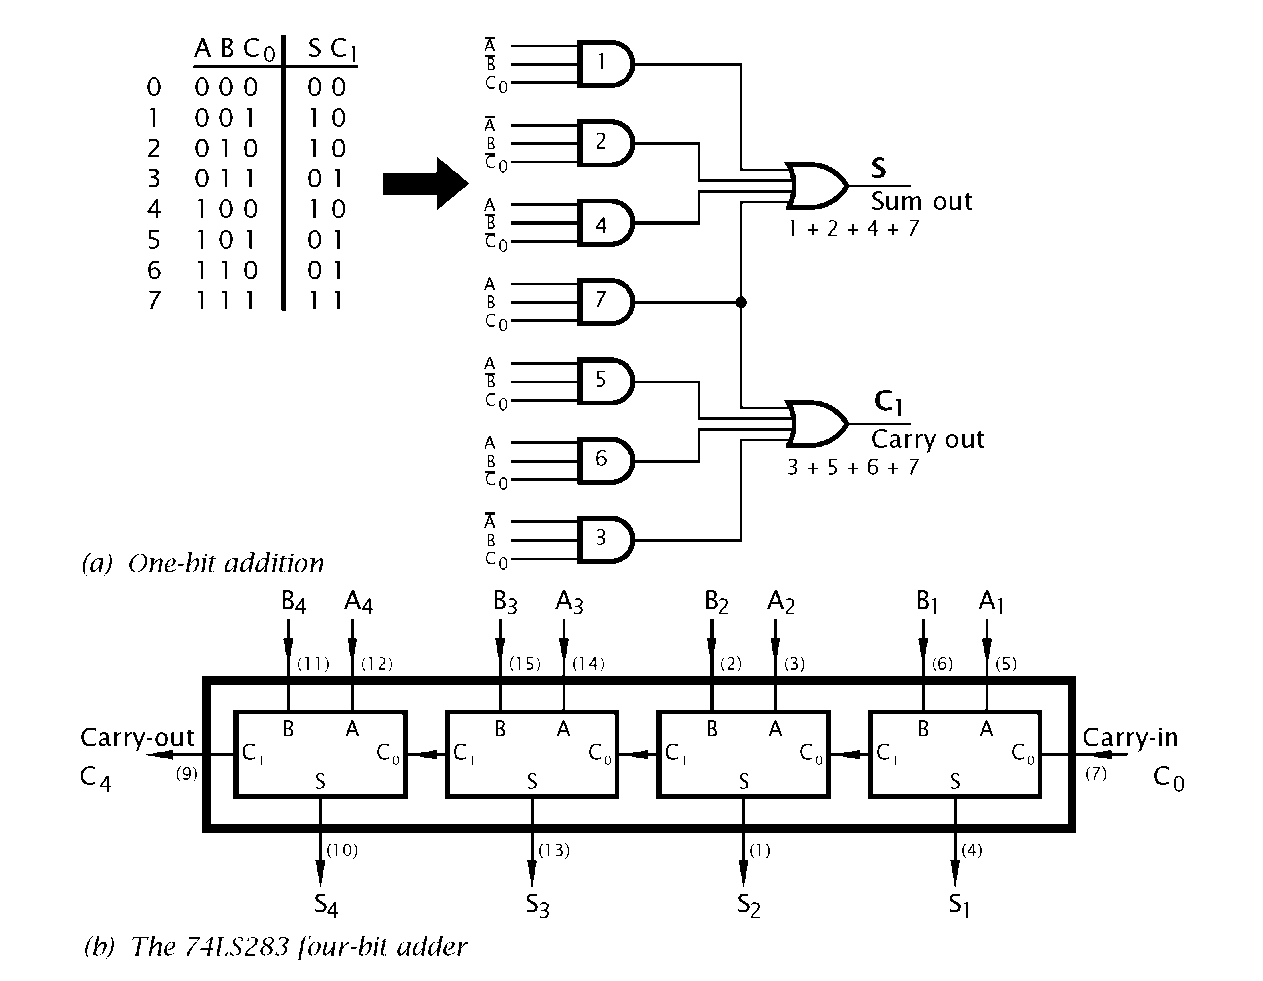 4 Bit Comparator Logic Diagram Wiring Library Design A 2bit Full Adder Circuit To Display Numbe Cheggcom Addition Circuitry